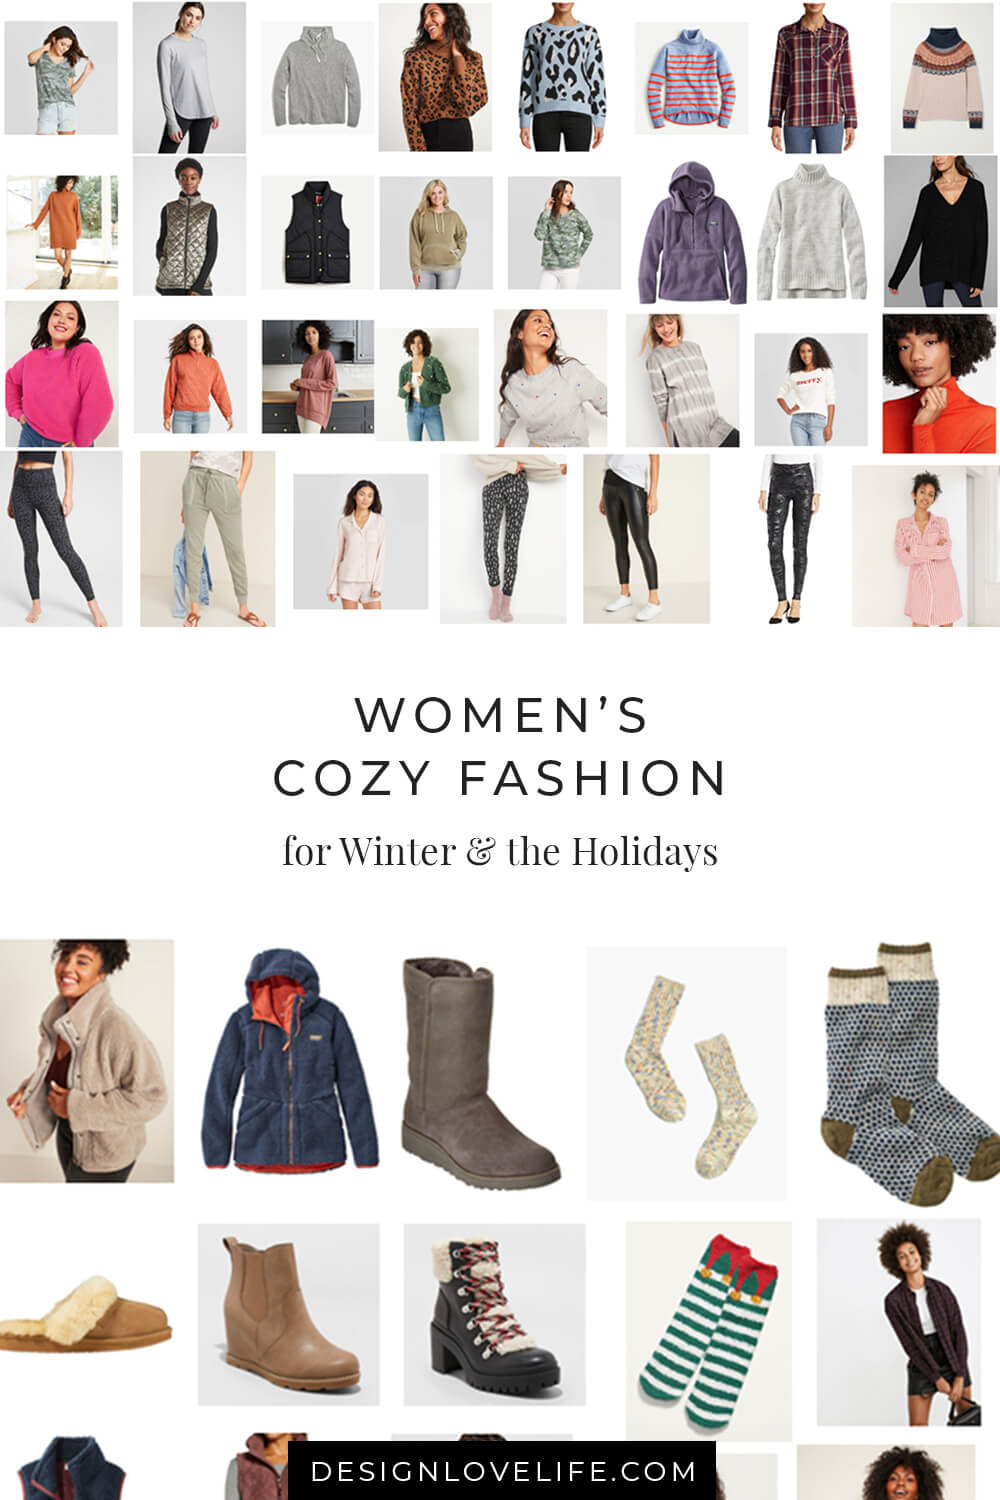 Cozy looks for the Winter and the holidays, from relaxing before bedtime to savoring coffee before the day kicks off. Women's Fashion. Annie Johnson - Design Love Life.